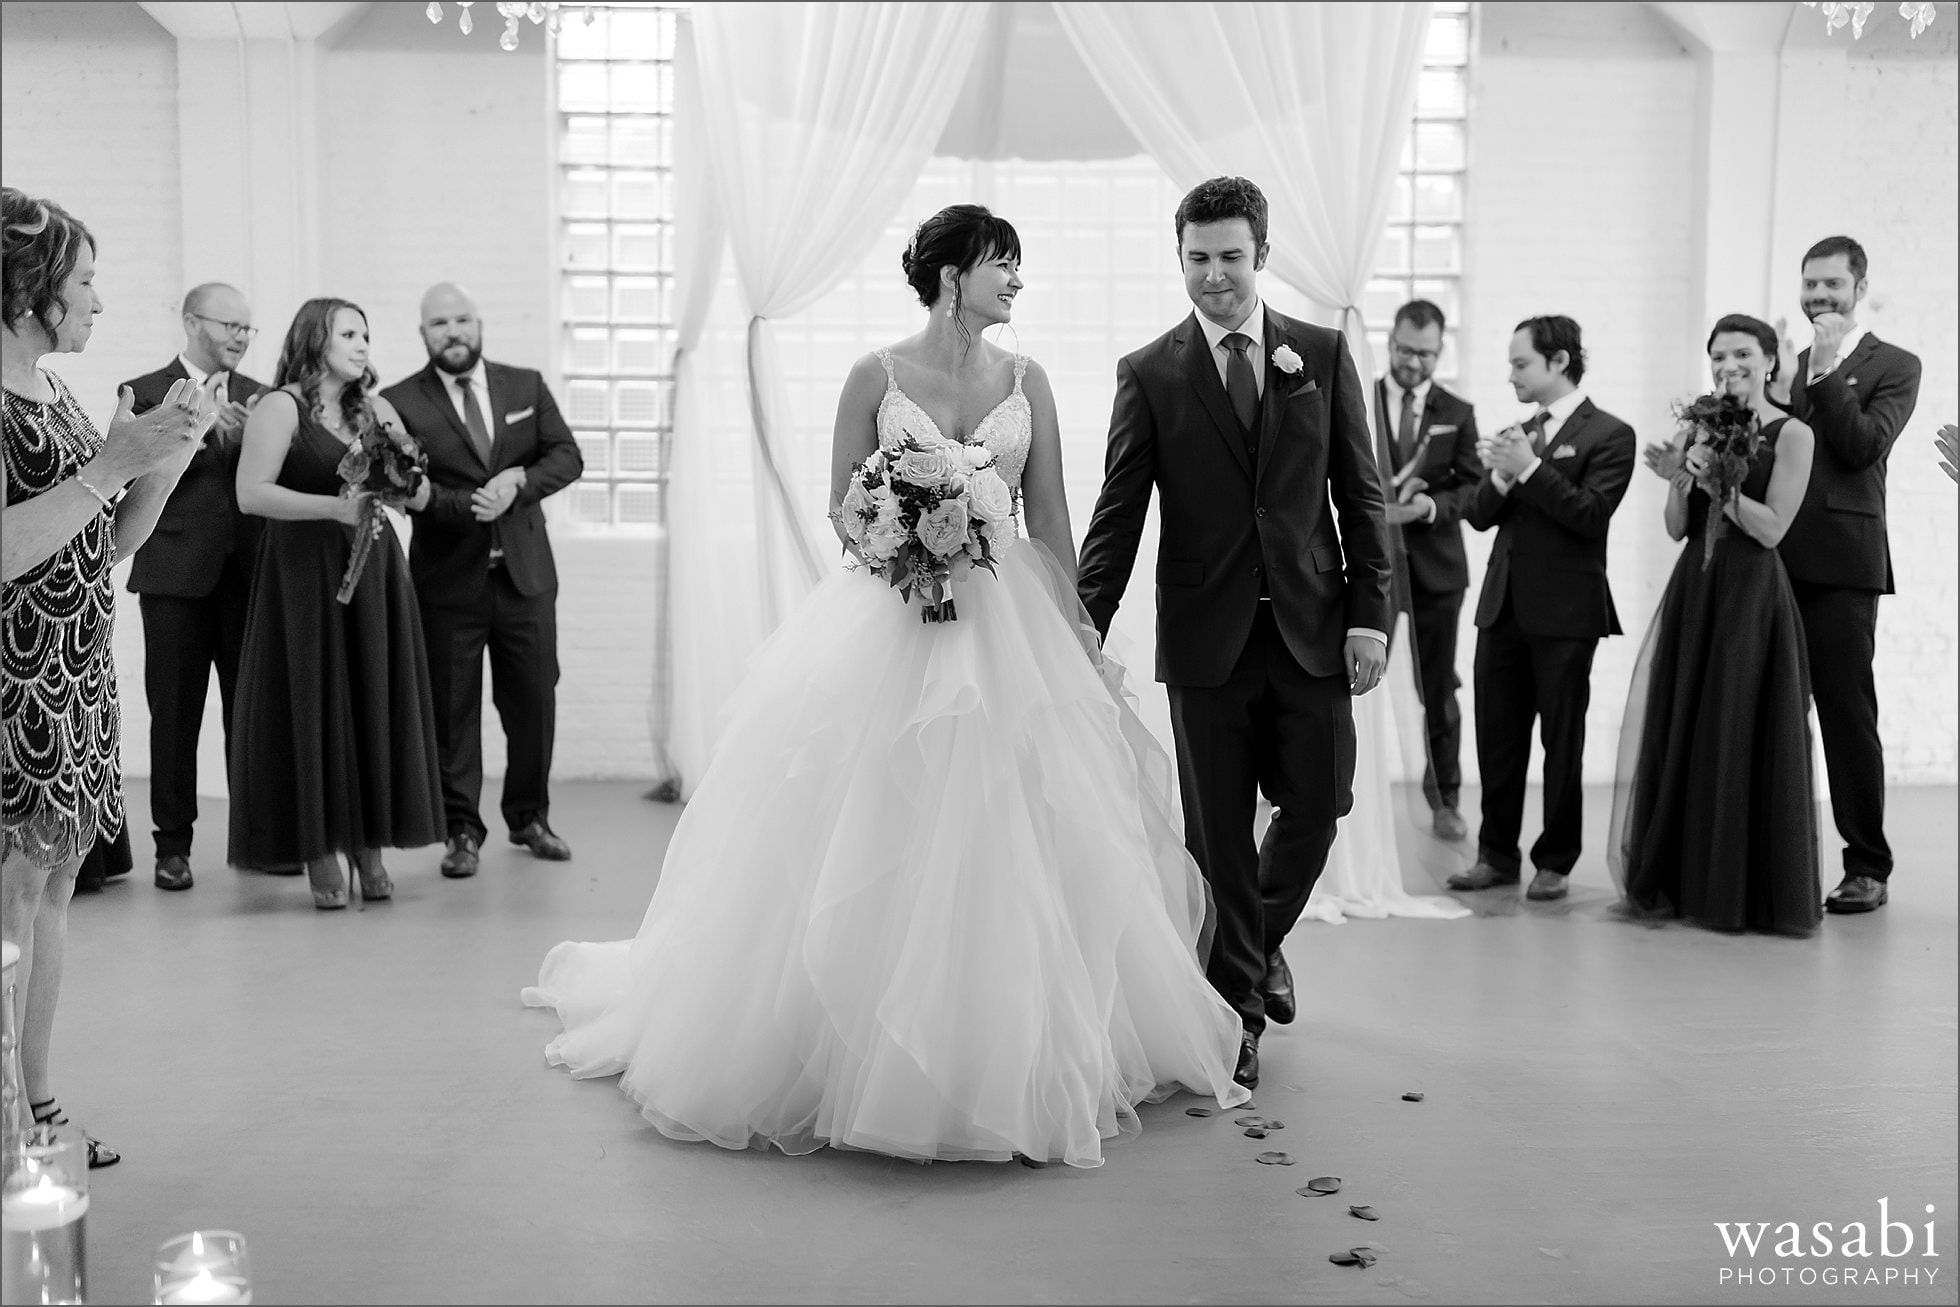 bride and groom walk back down the aisle together after wedding ceremony at Room 1520 in Chicago